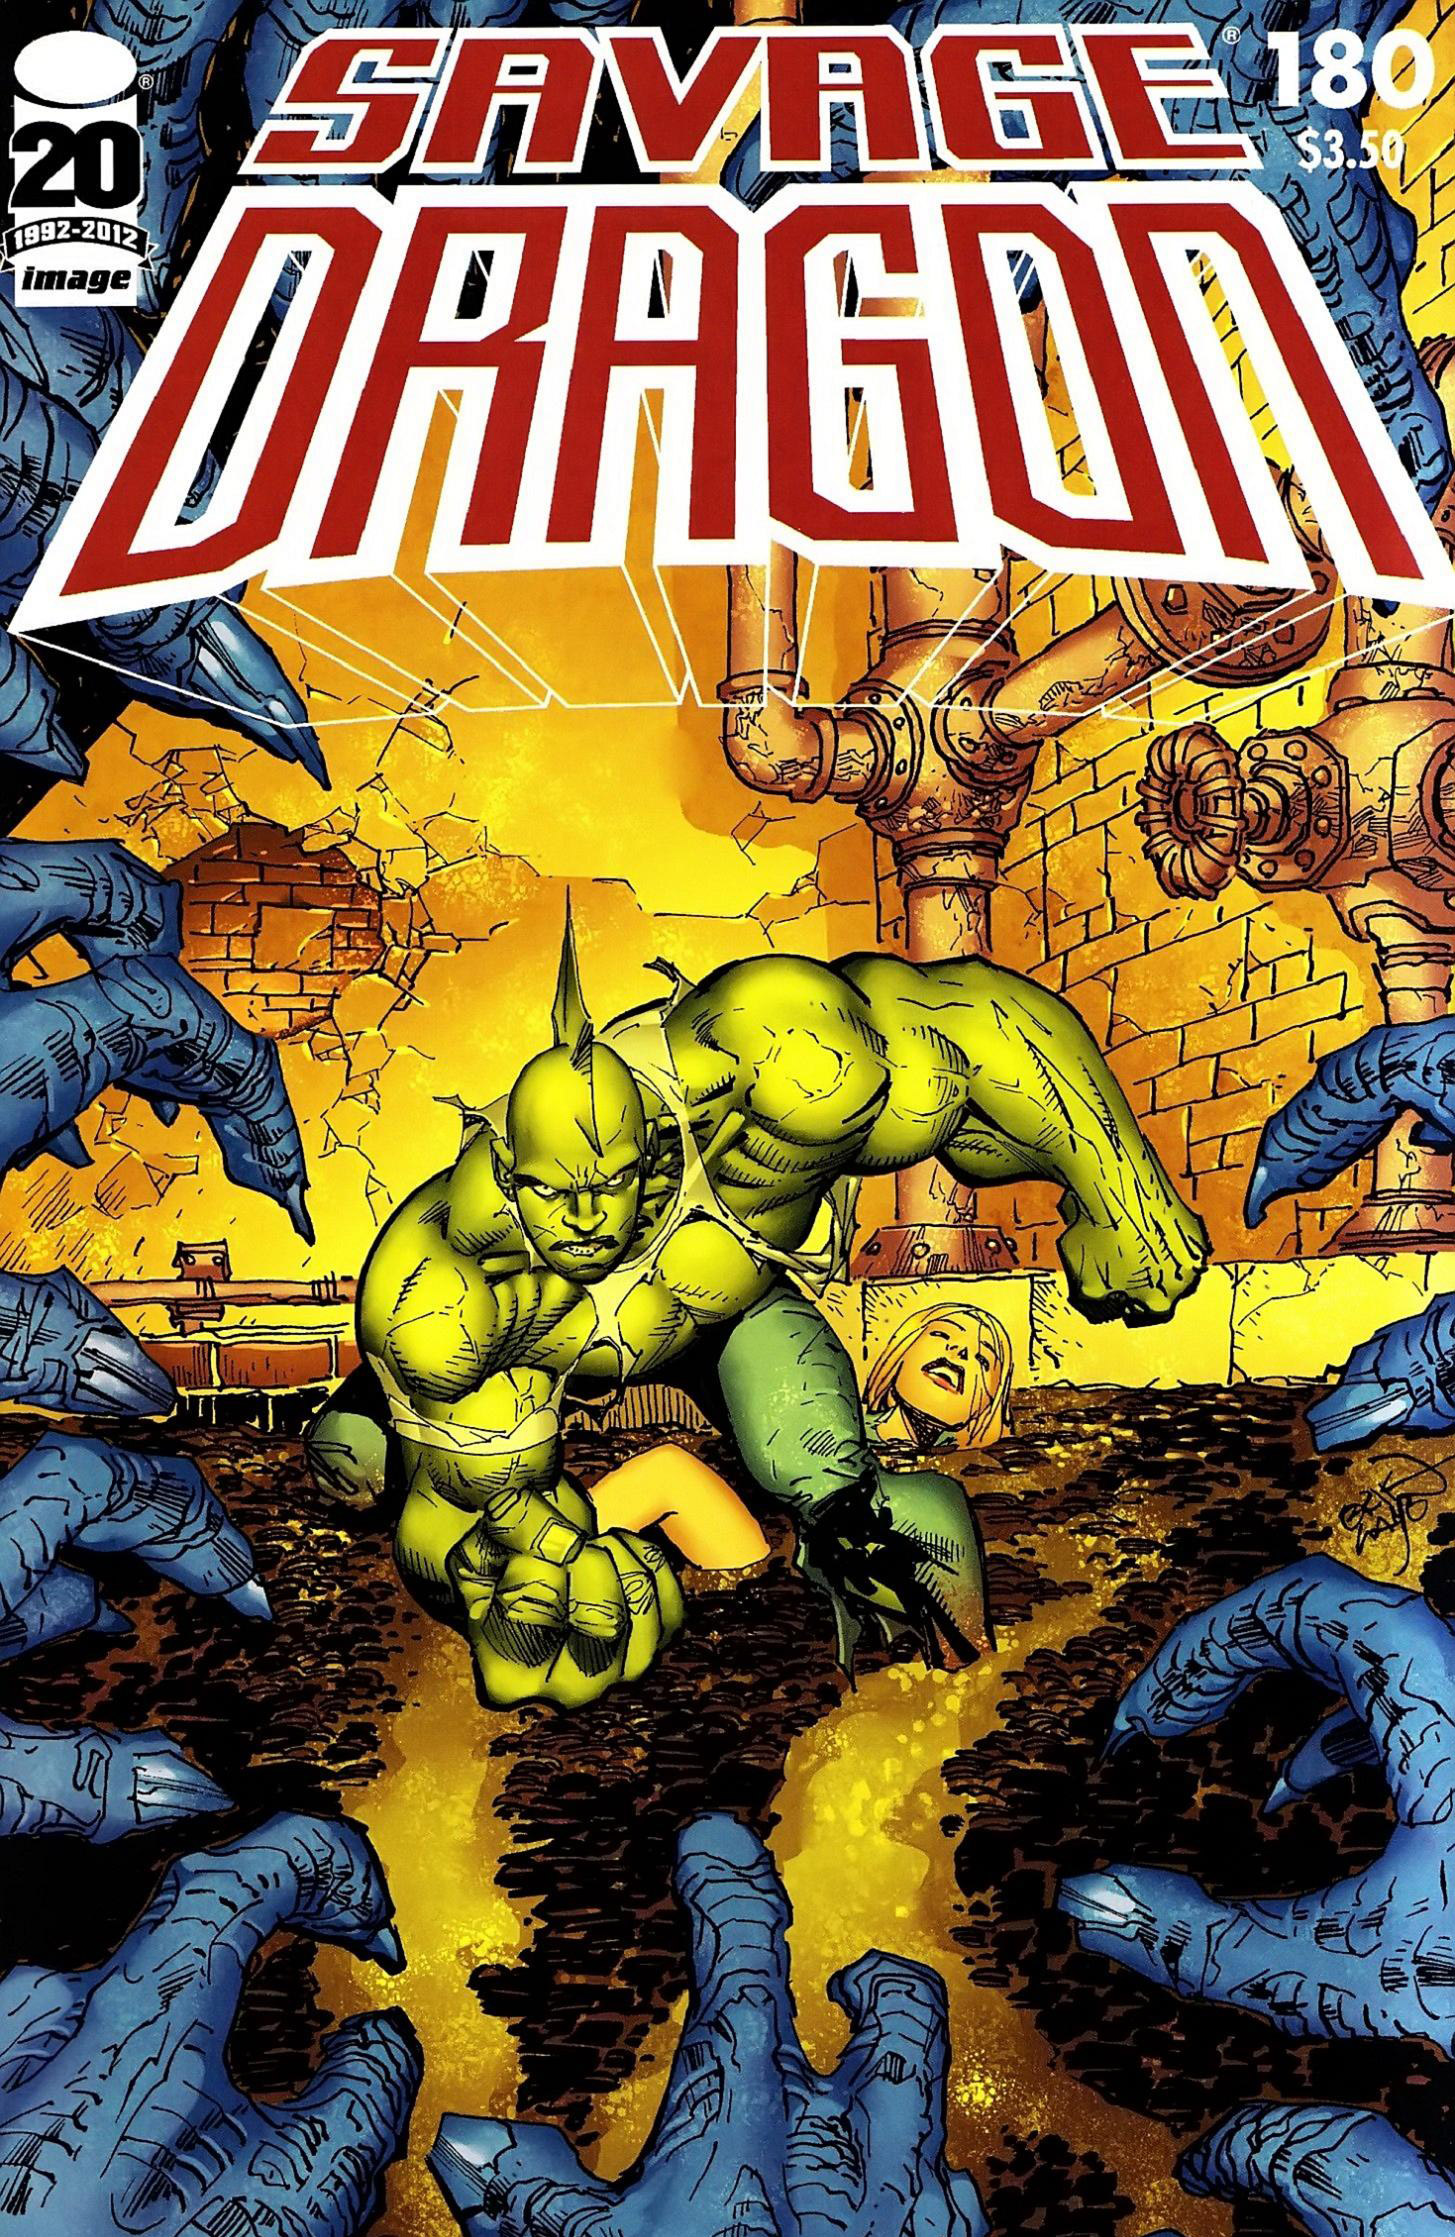 Cover Savage Dragon Vol.2 #180